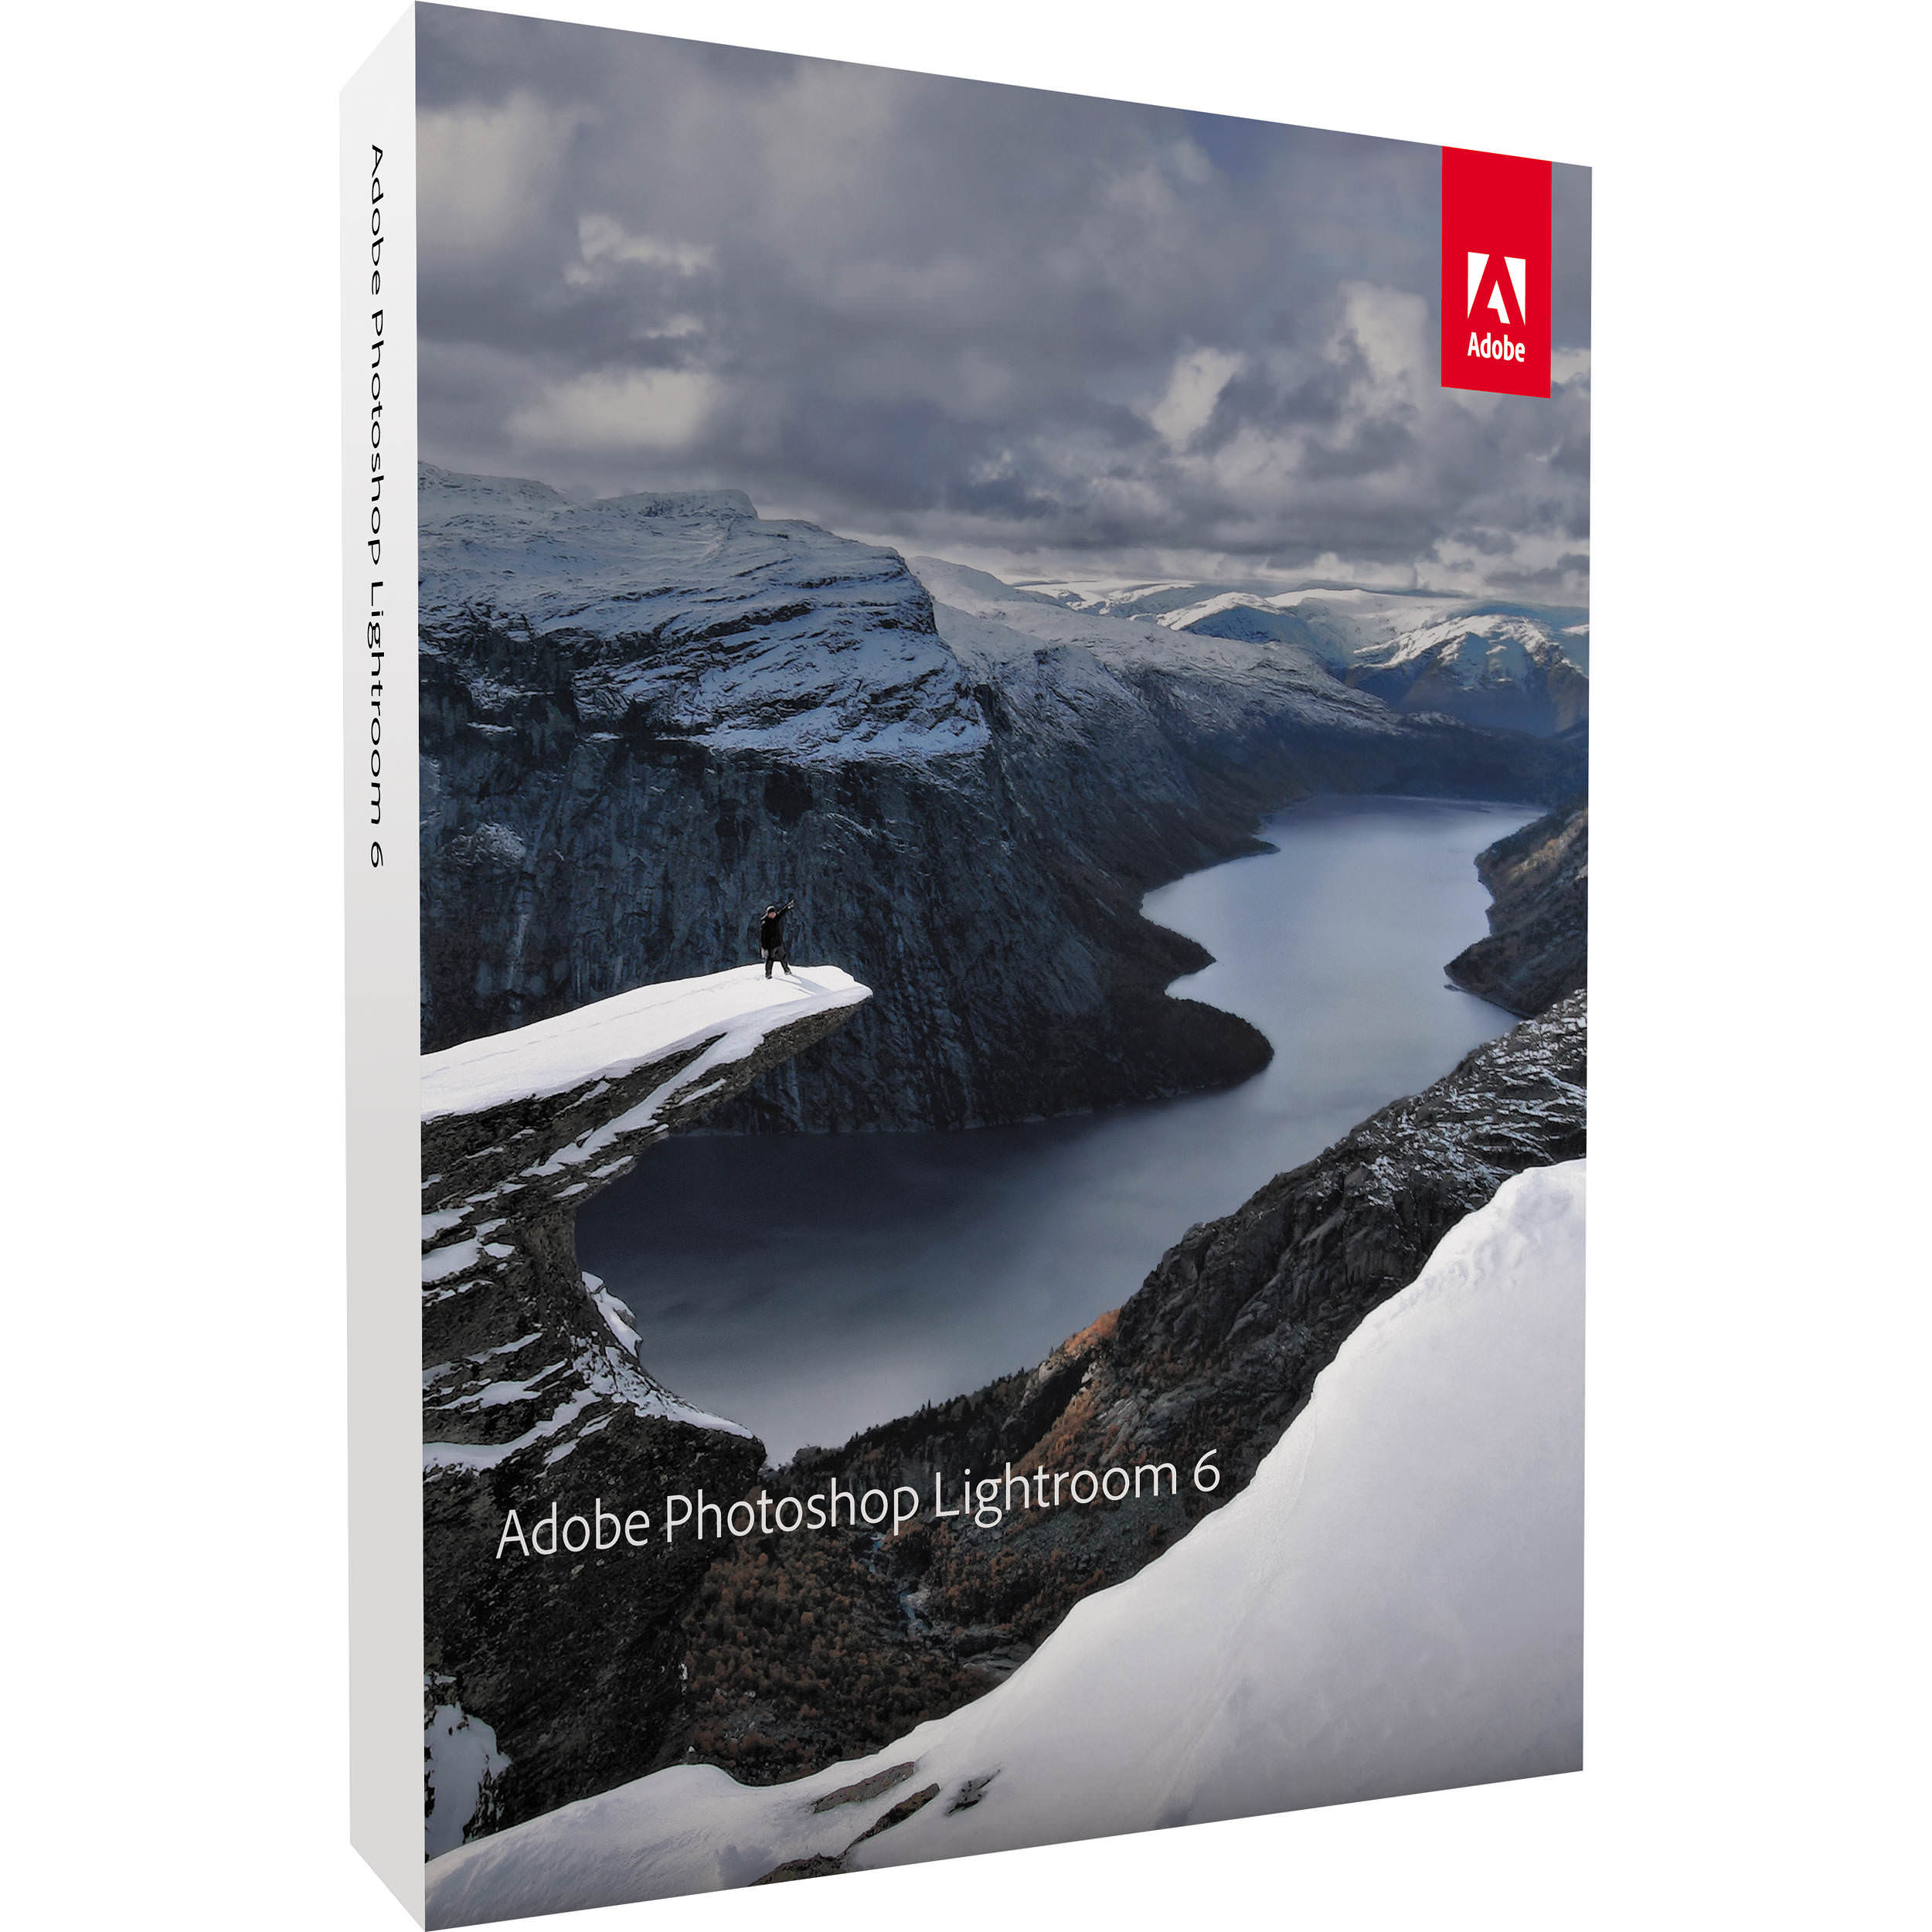 Adobe Photoshop Lightroom for Mac picture